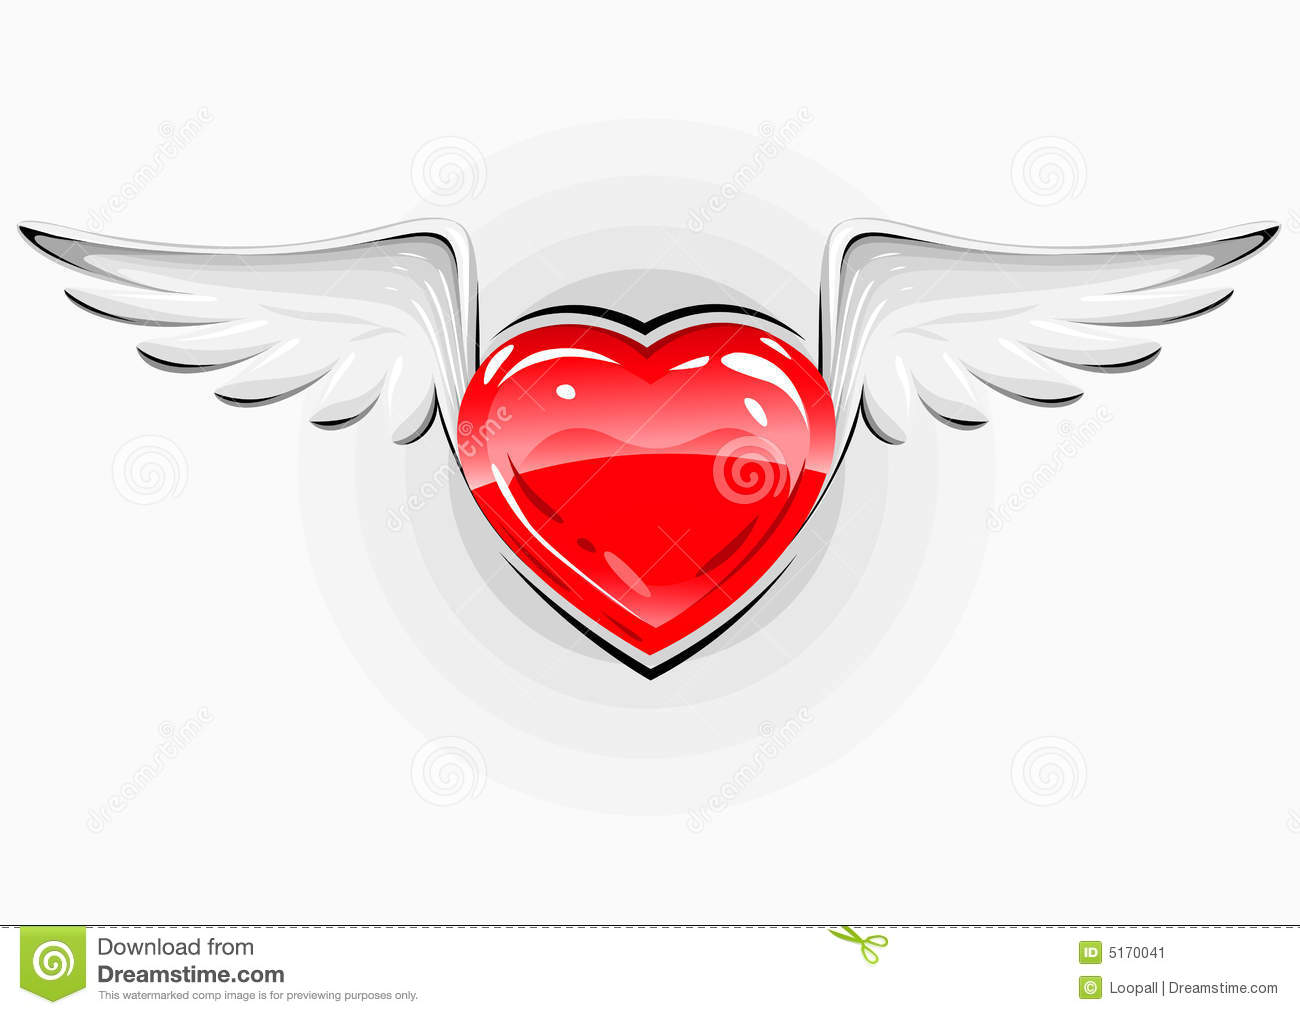 Red Love Heart With White Wings Stock Image - Image: 5170041